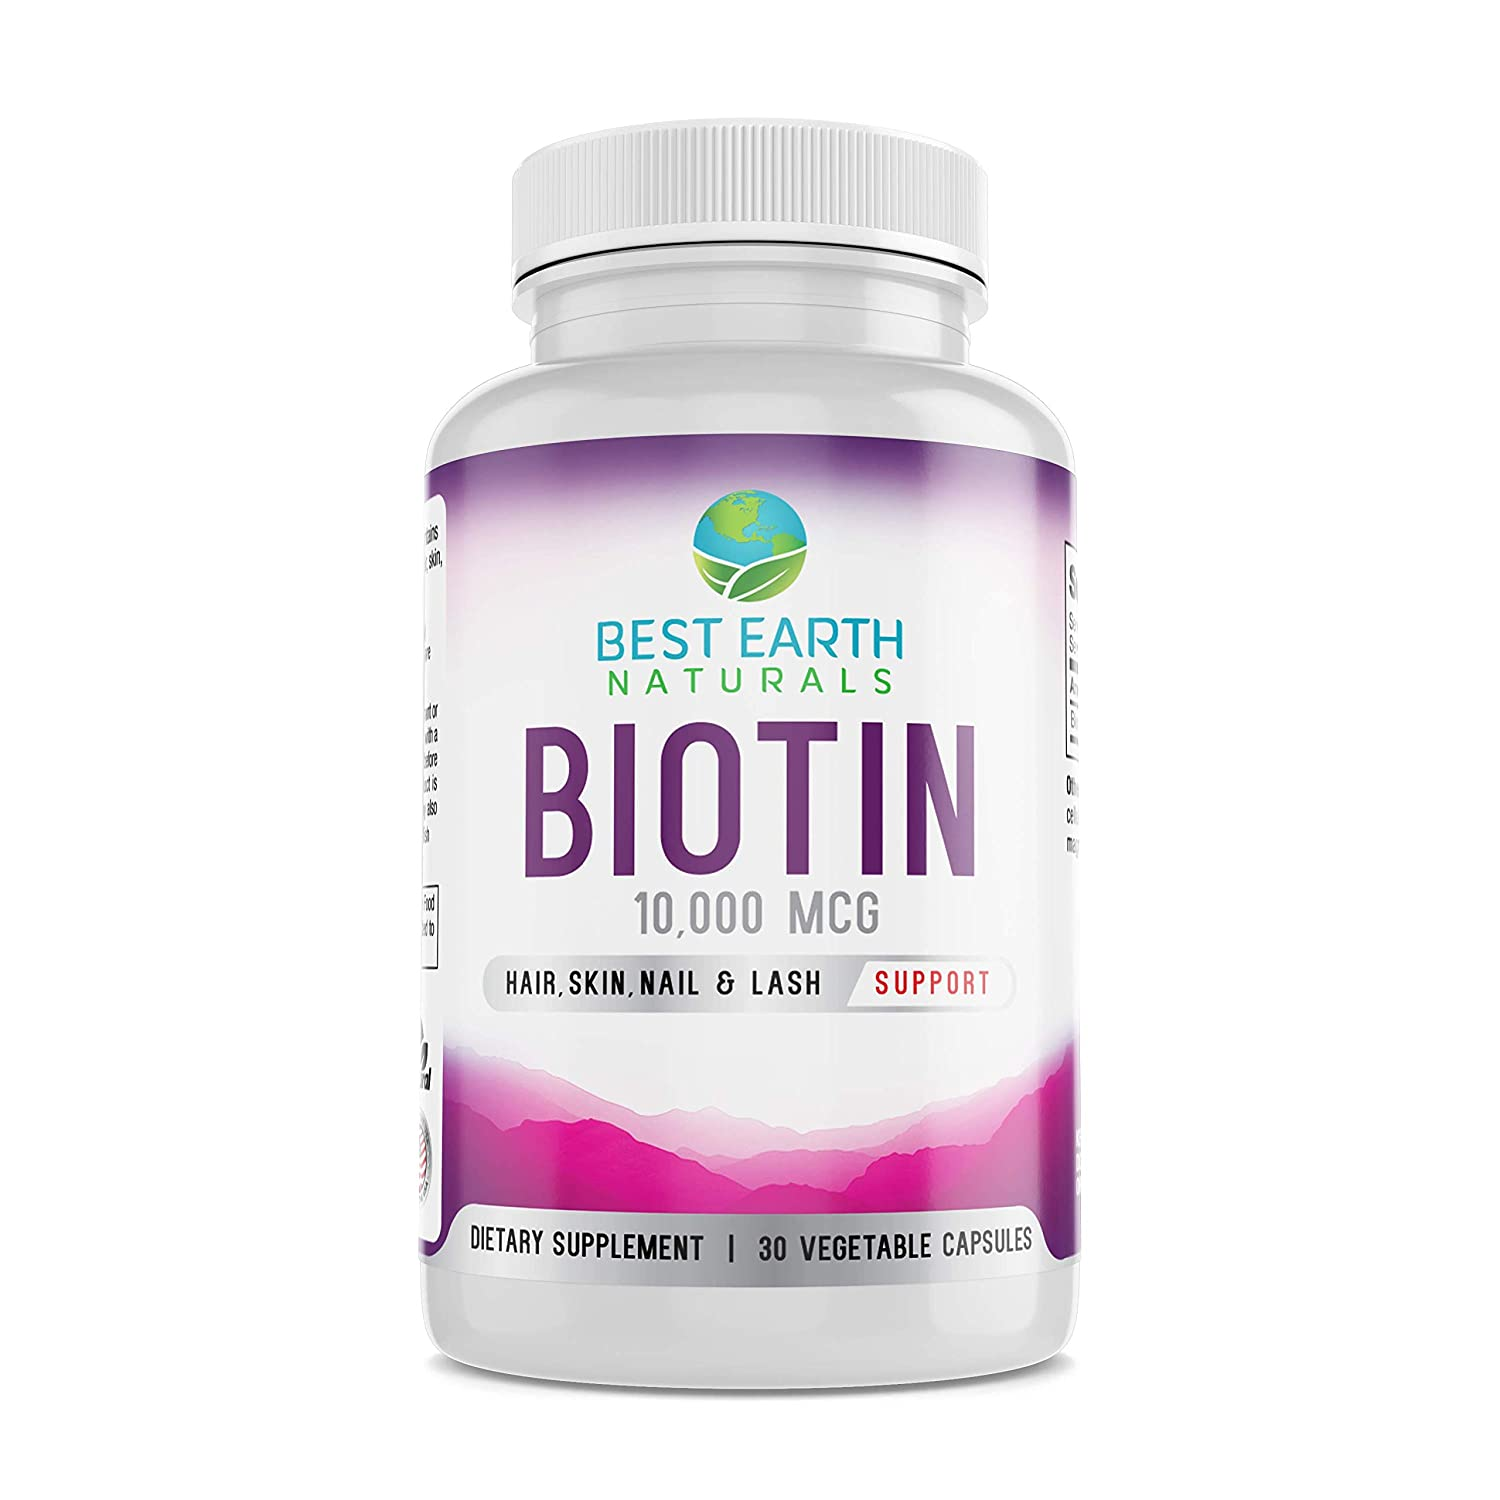 Biotin 10,000mcg - Extra Strength Biotin Vitamin Supplement for Hair Growth, Strong Nails, Longer Eye Lashes and Healthy Skin